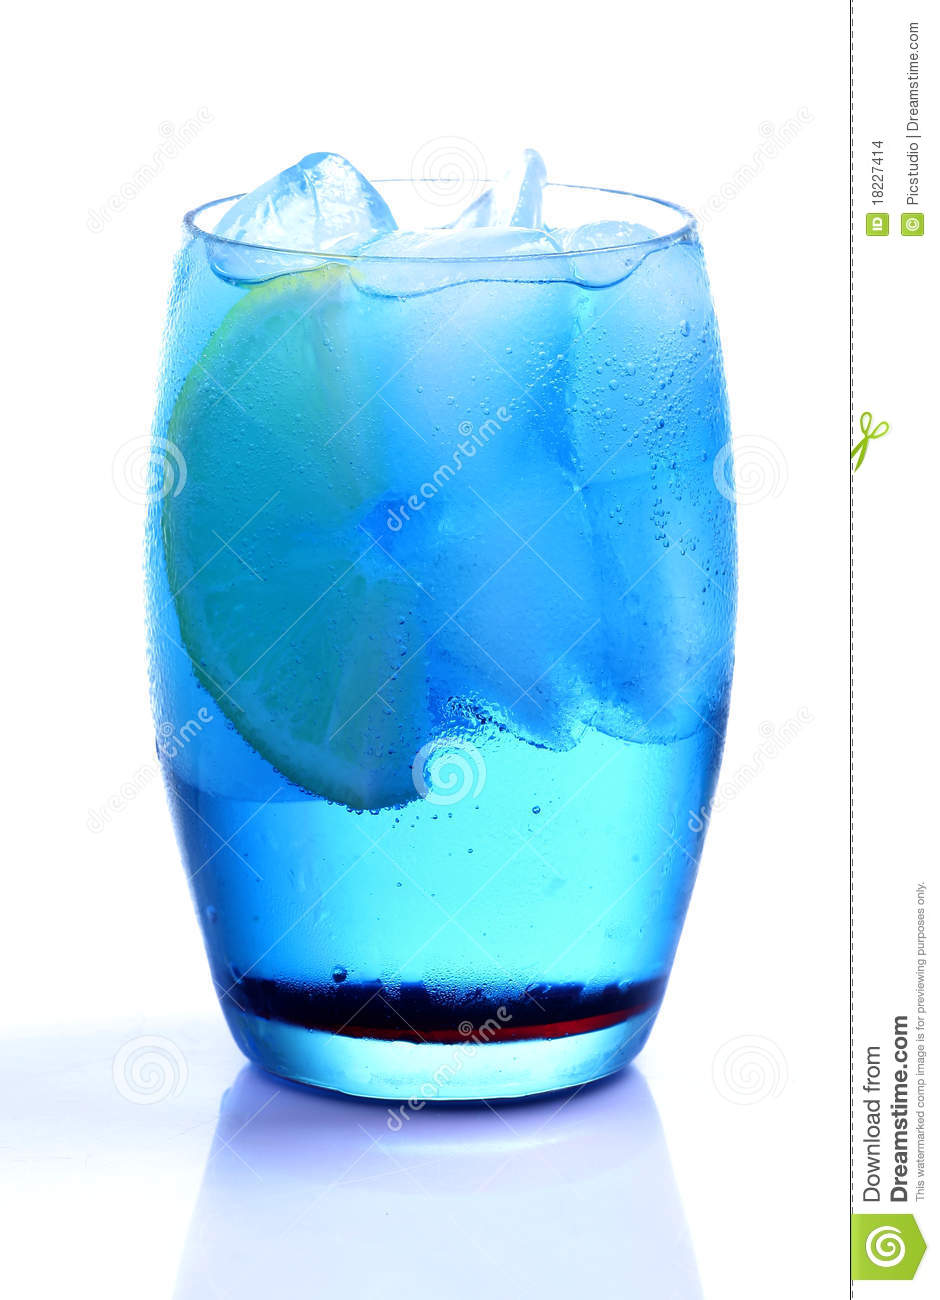 Blue Curacao Drink Stock Images - Image: 18227414